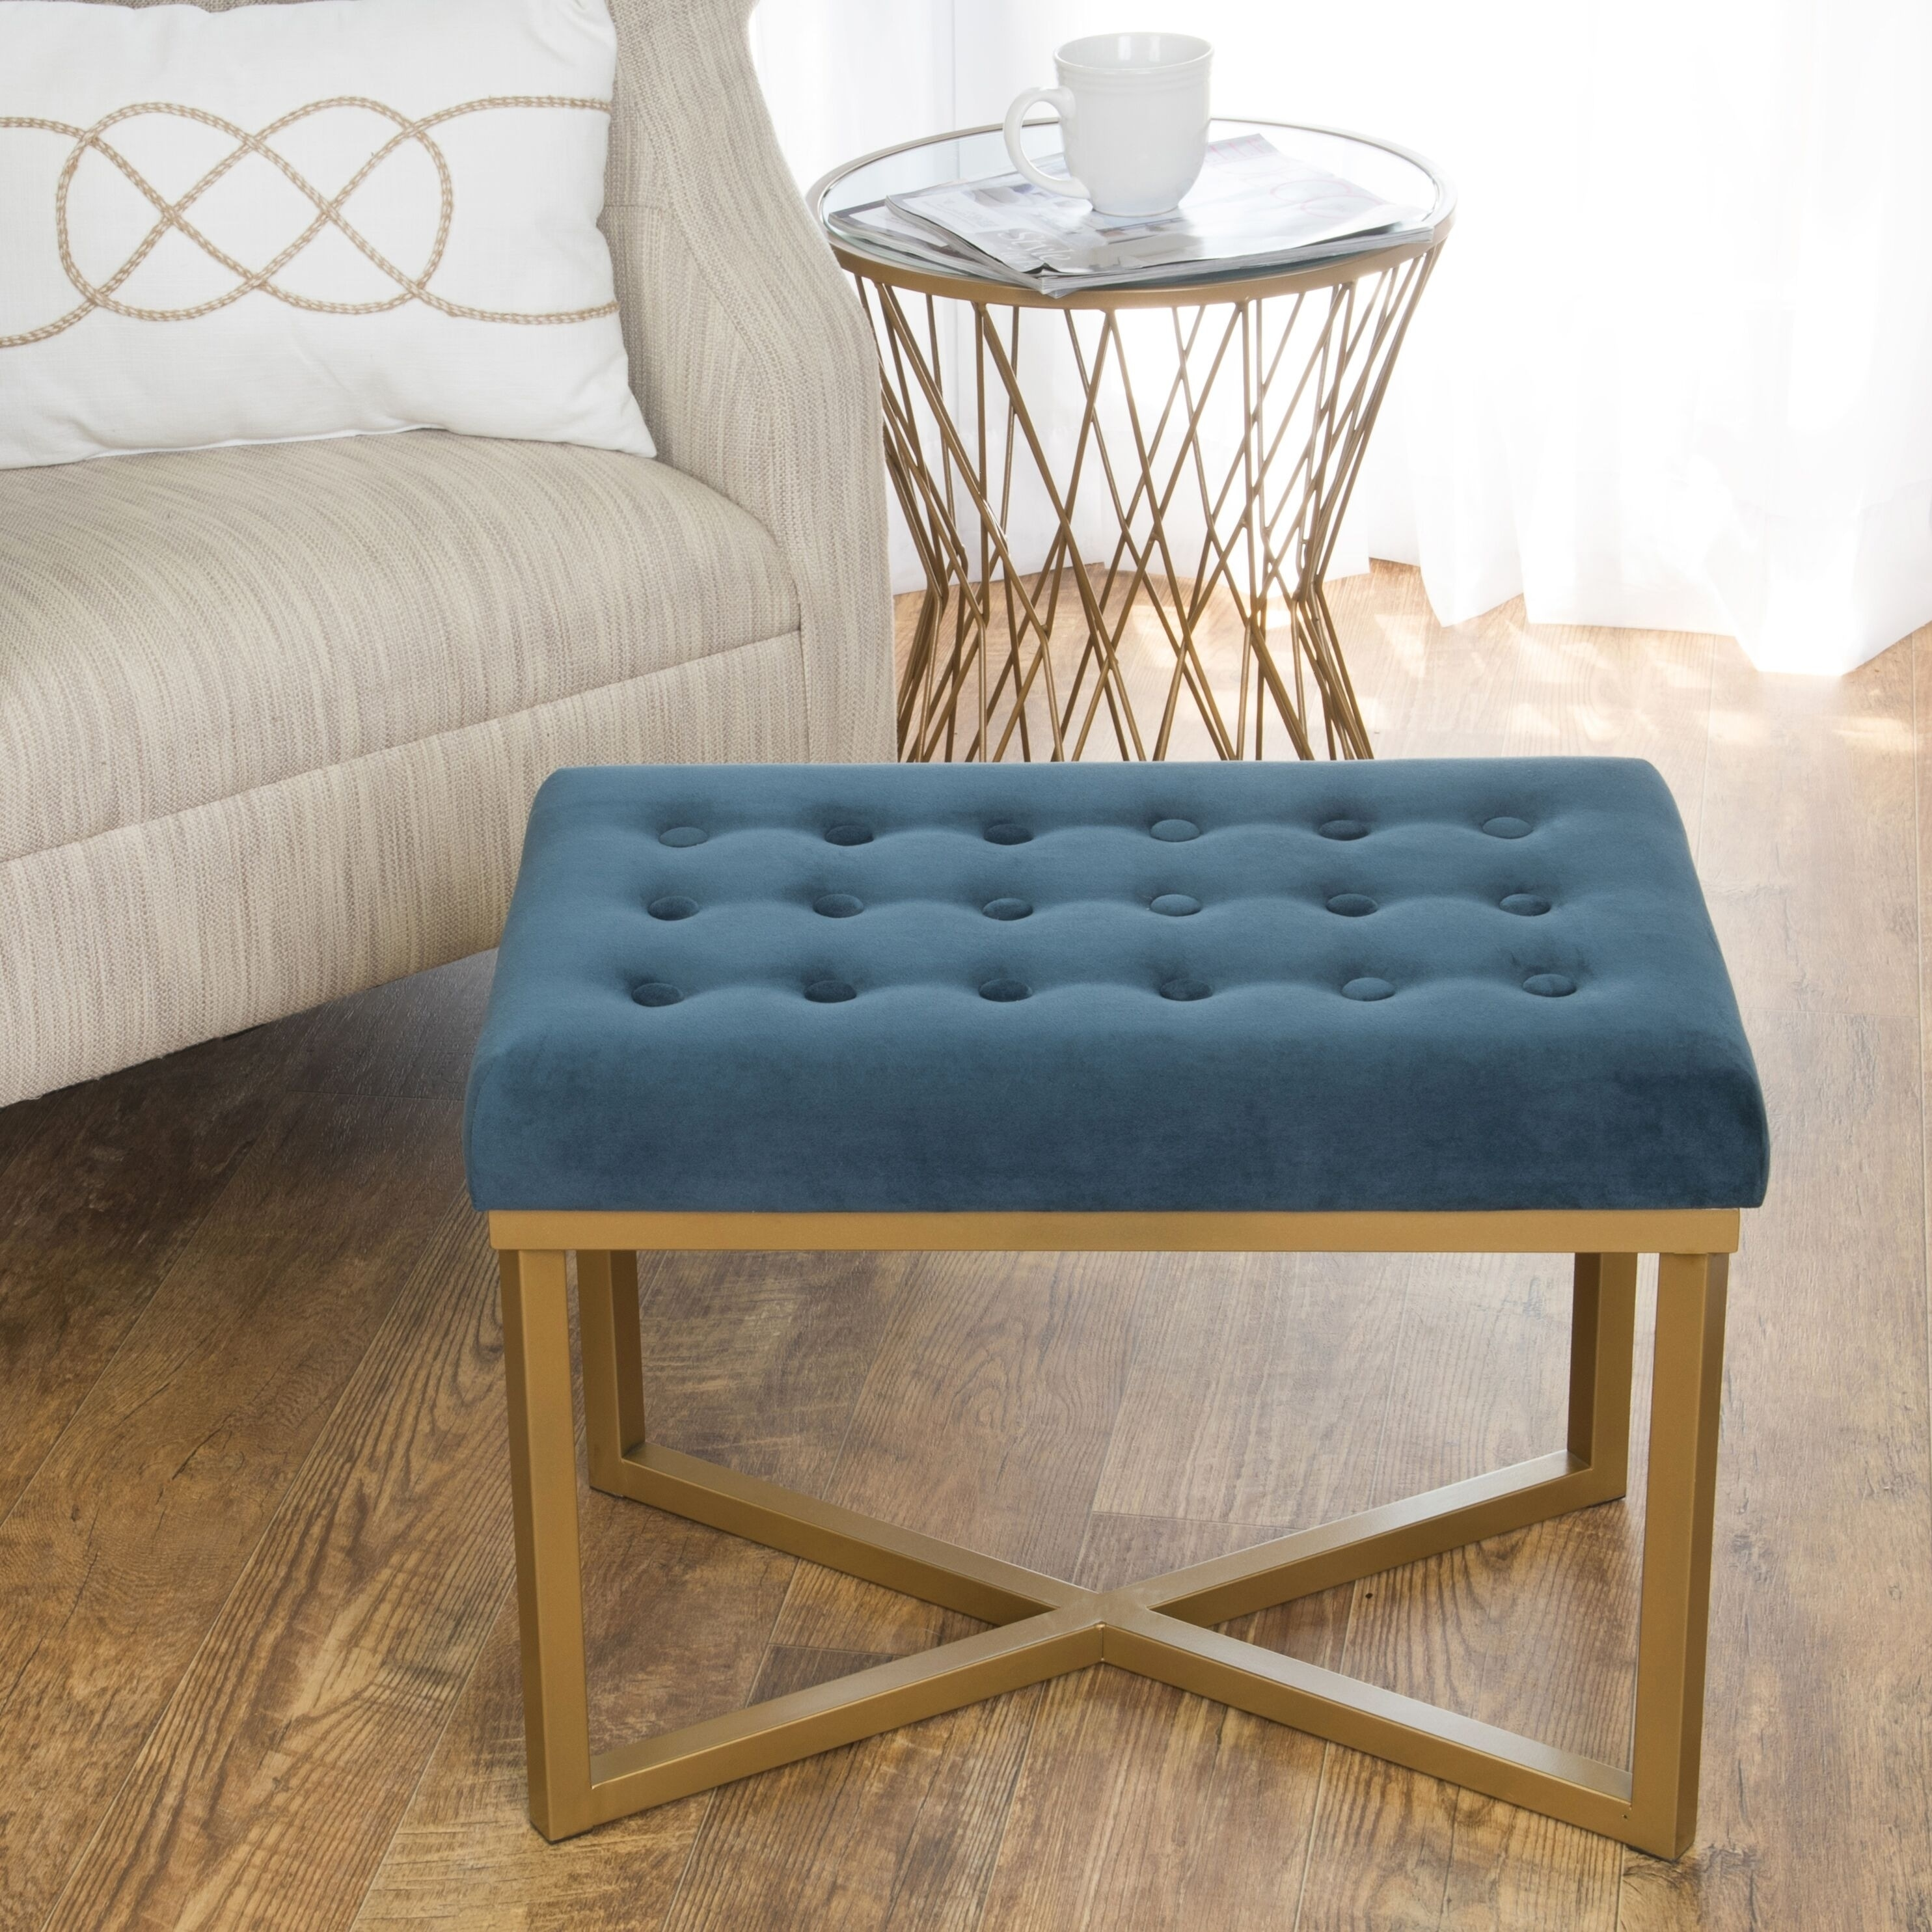 Silver Orchid Pugo Rectangular Ottoman With Midnight Velvet Tufted Cushion And Gold Metal X Base Overstock 11413266